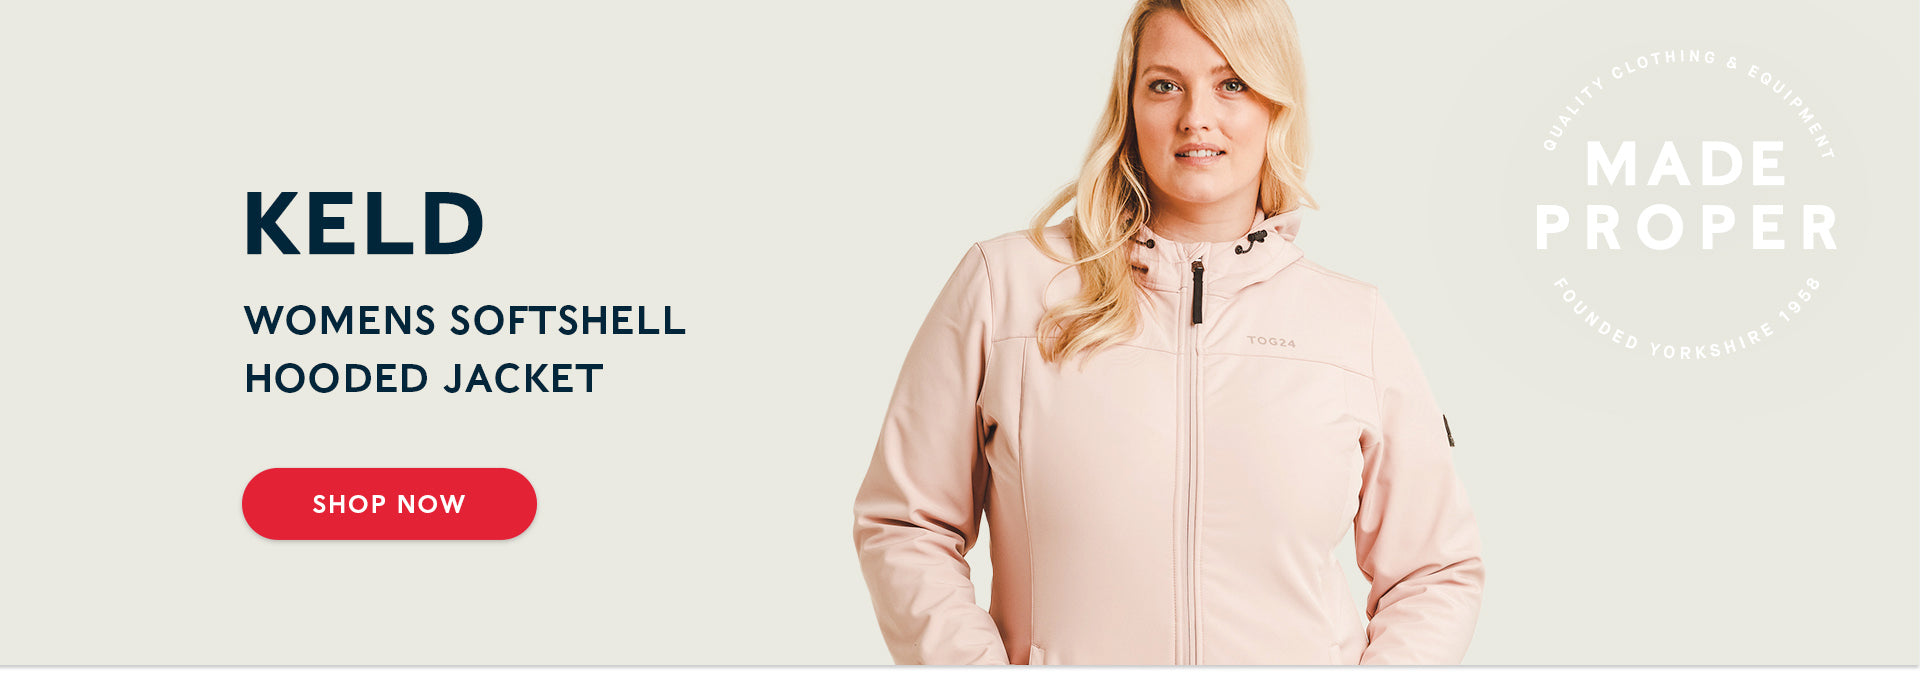 Keld Womens Softshell Hooded Jacket | Shop now